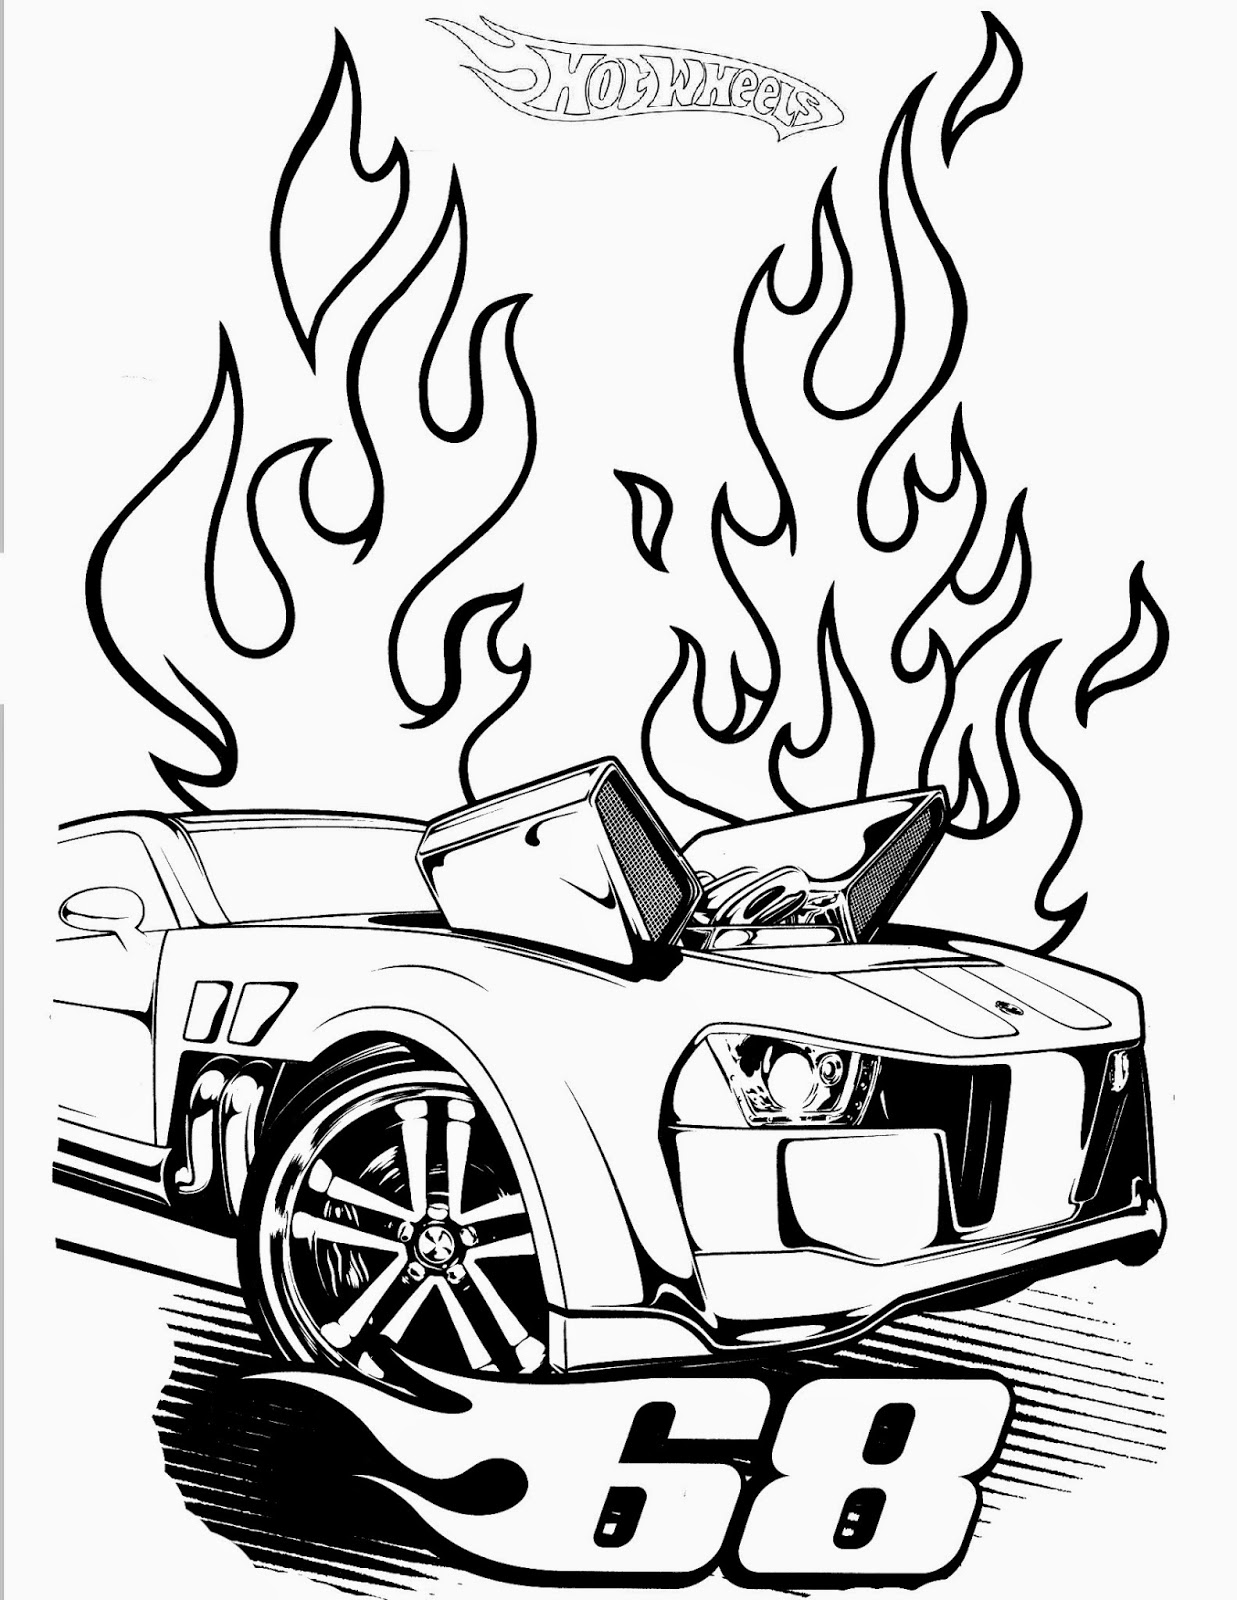 Hot wheels racing league hot wheels coloring pages set 3 for Wheel coloring page